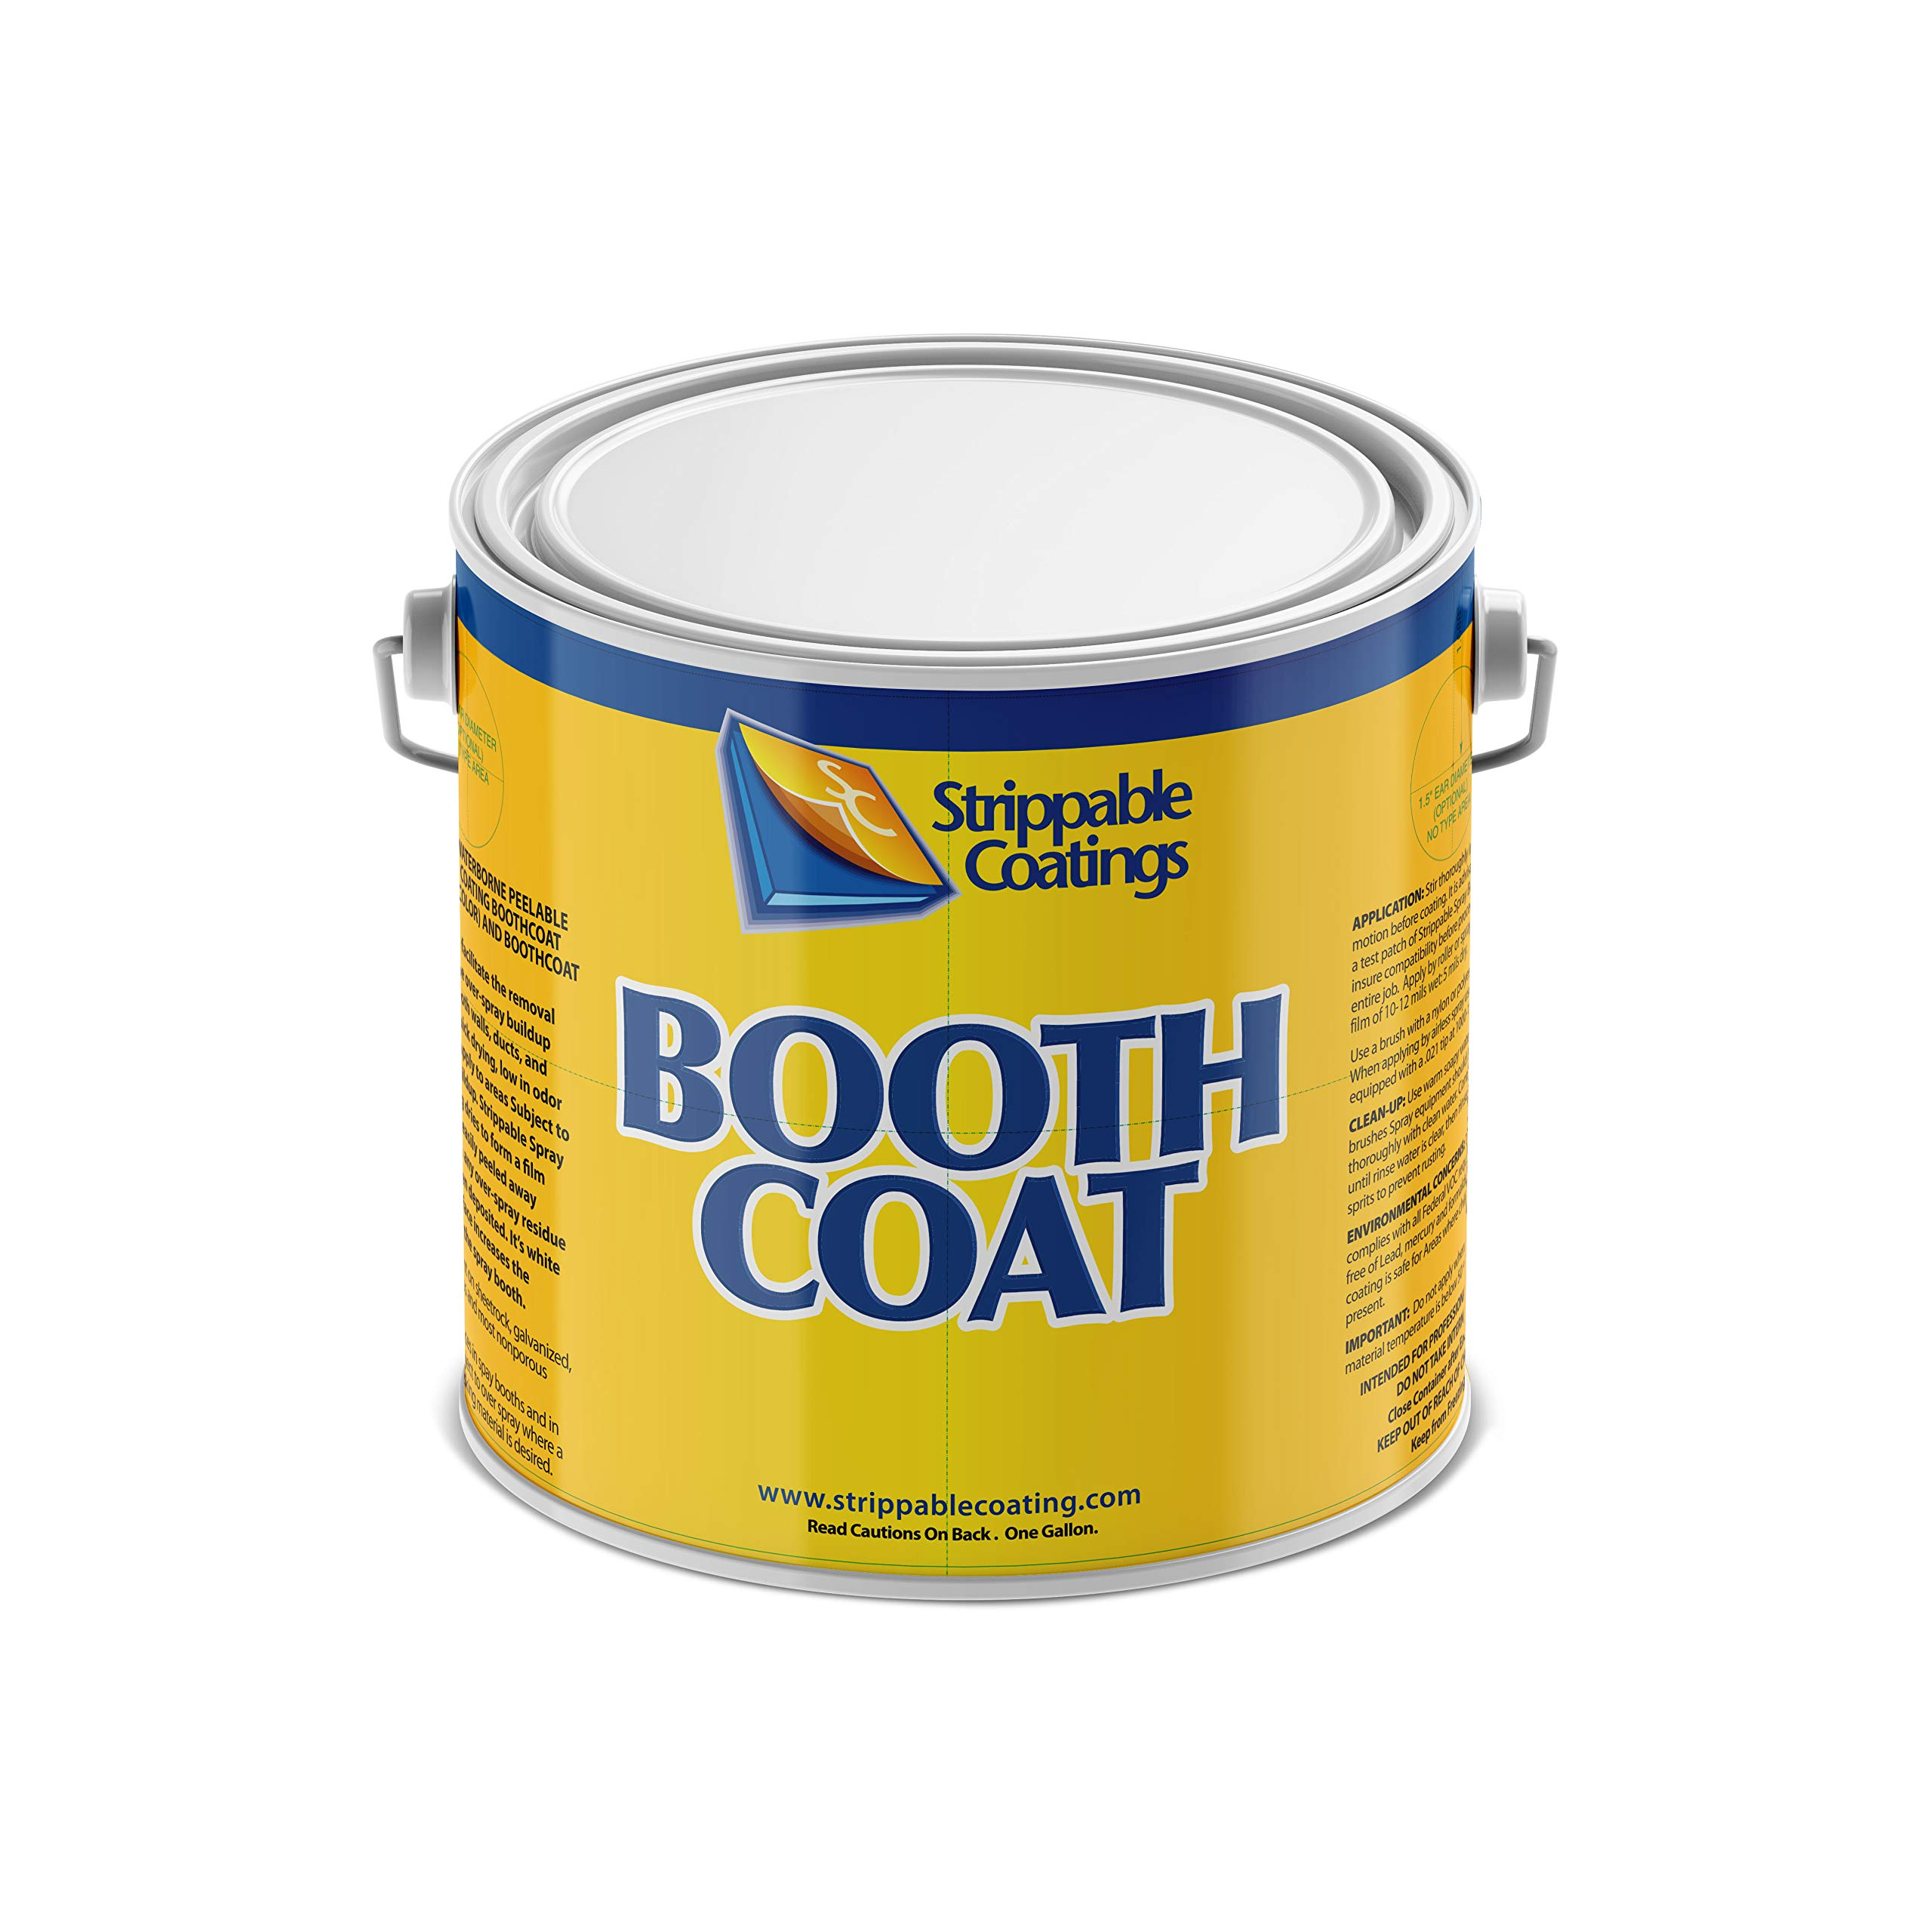 BOOTHCOAT 5201 | Paint Booth Coating Protective Paint | White Peelable Coating Paint for Walls, Ceilings, and Light Fixtures | Water Based (1 Gallon)